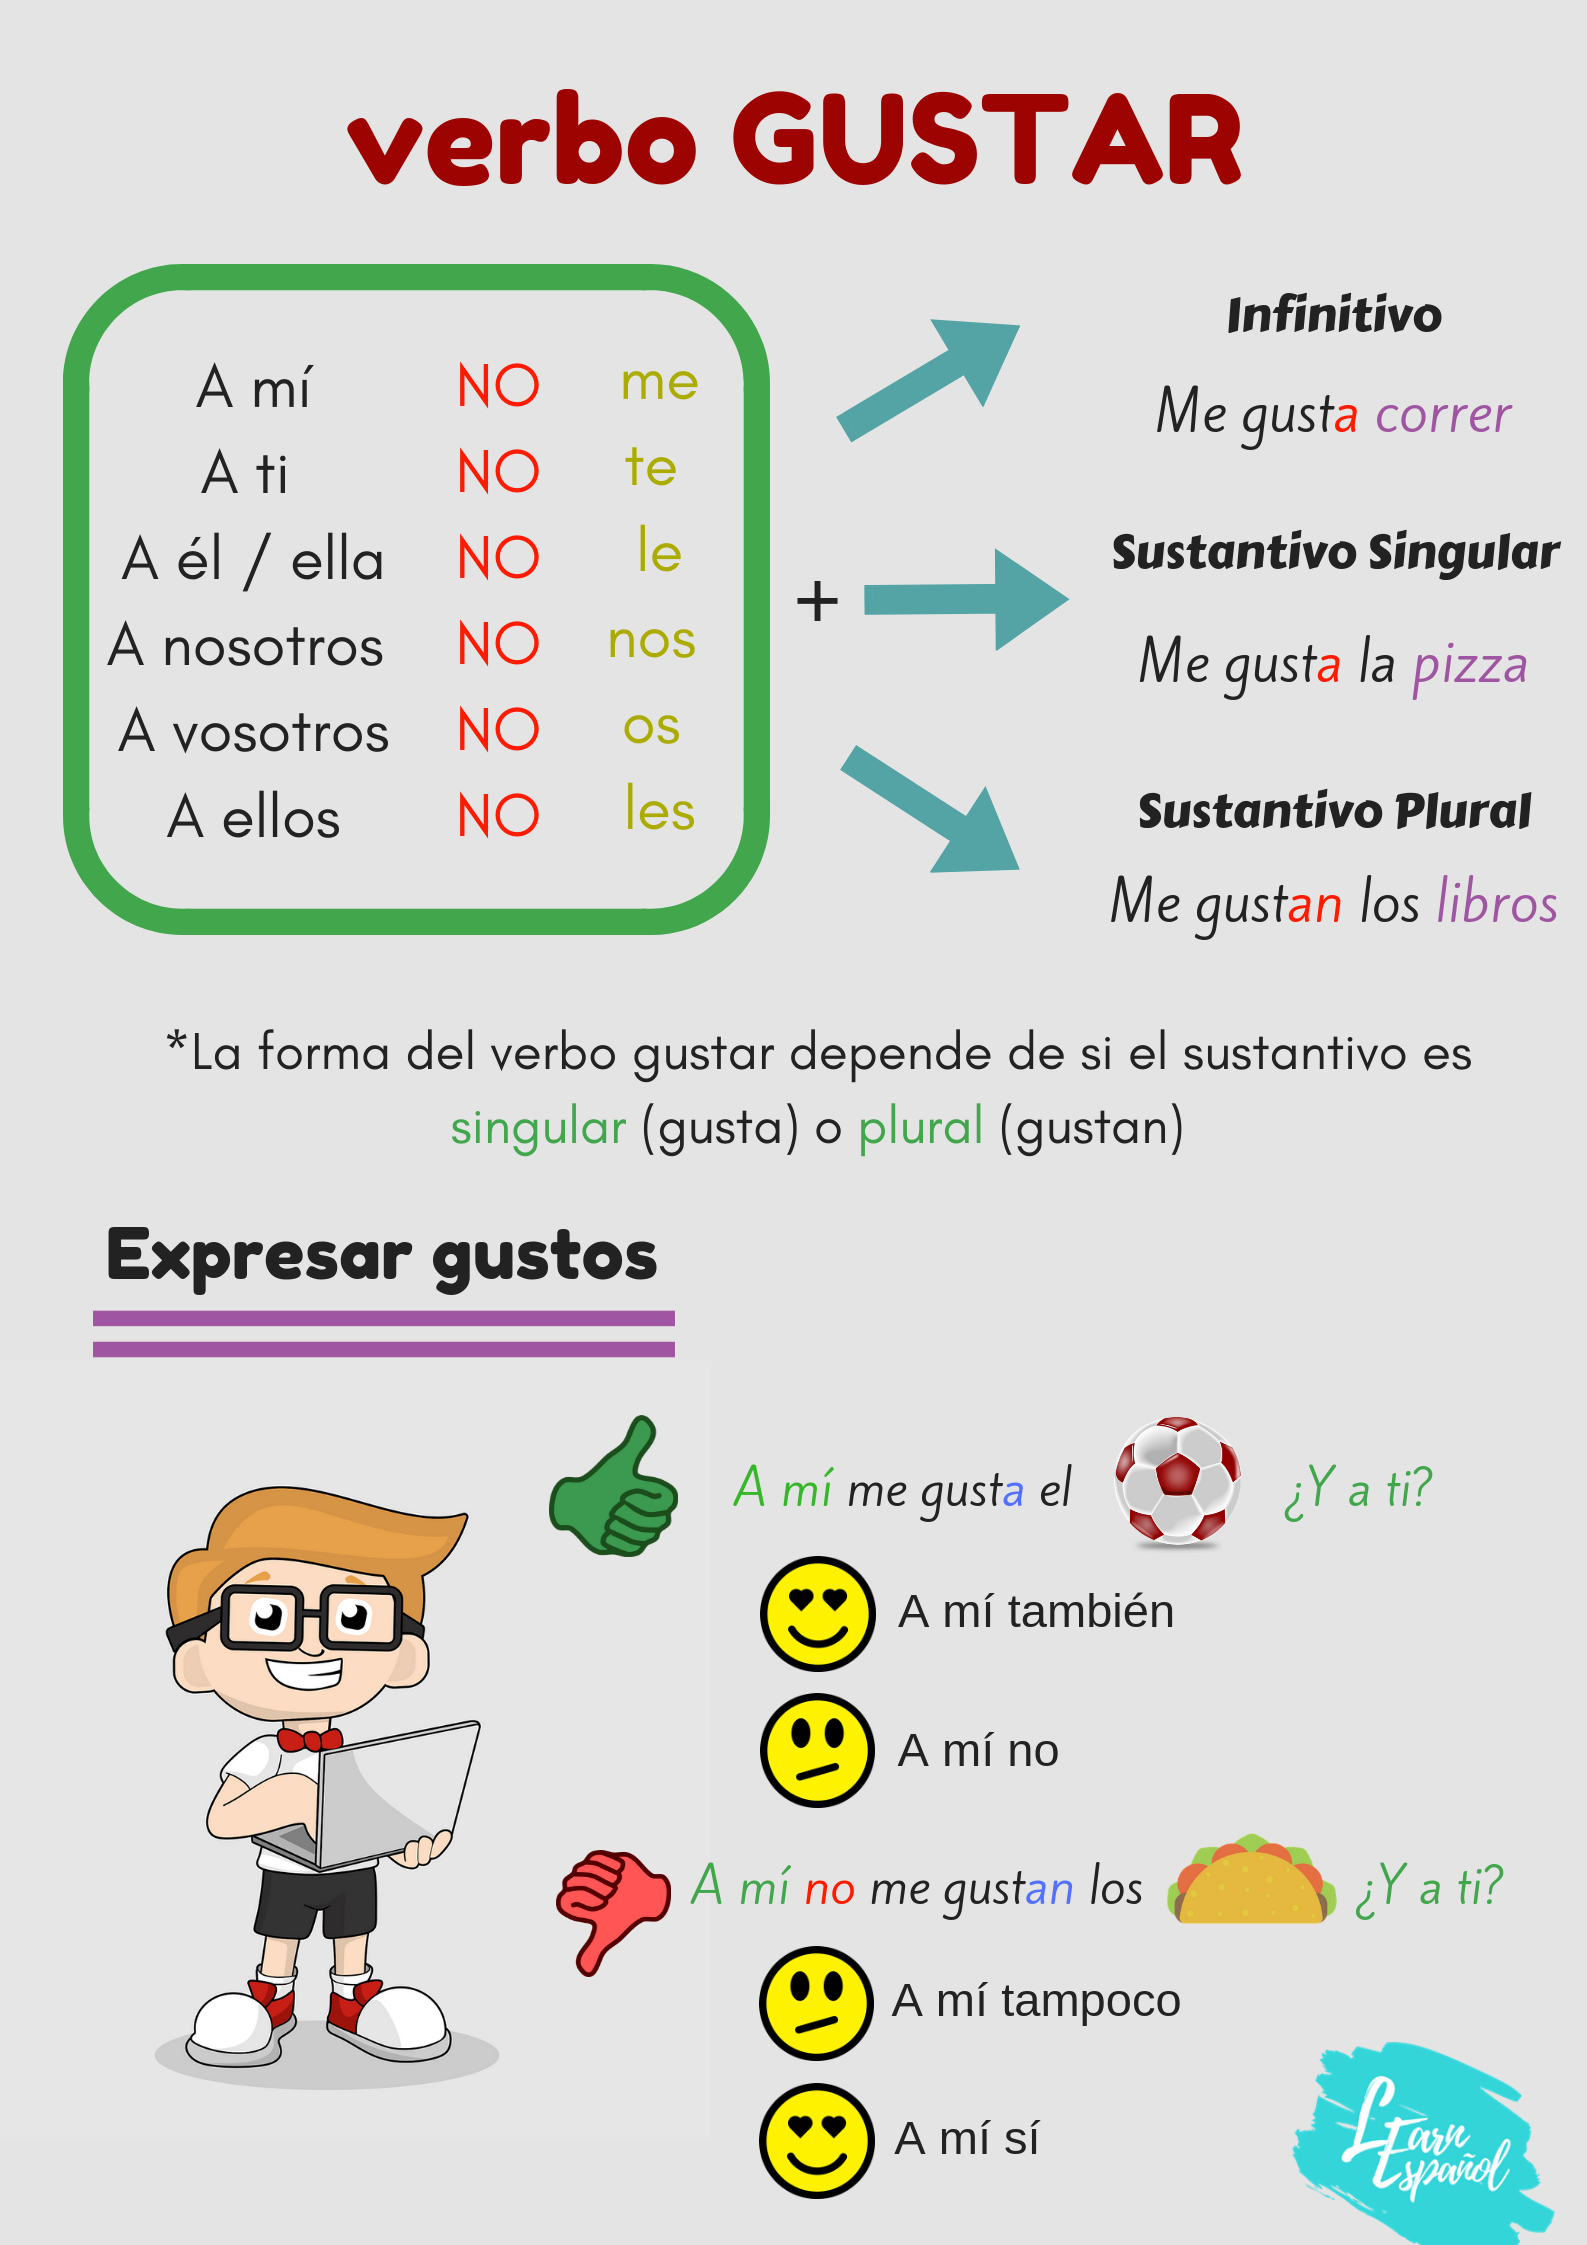 Verbo Gustar Verbos Relfexivos Expresar Gustos Gramática Española Ele Nivel A1 Principiante Learning Spanish Teaching Spanish Spanish Learning Activities